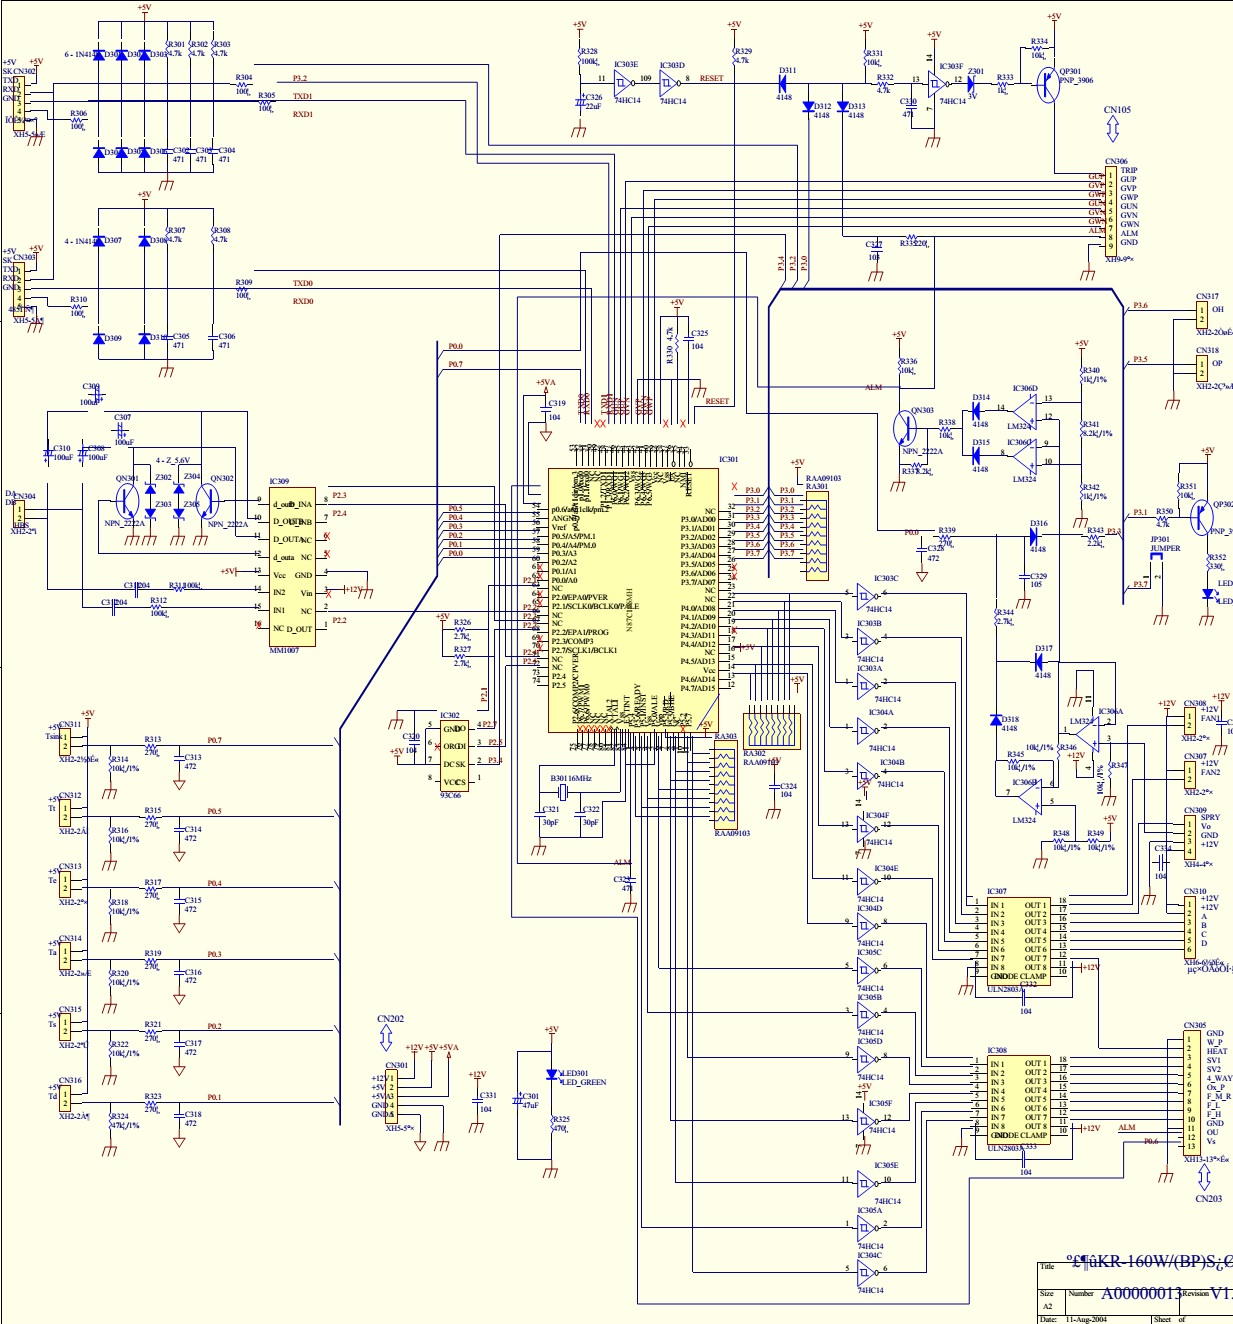 Haier Air Conditioner Wiring Diagram With Switch on mitsubishi air conditioners wiring diagram, haier air conditioner hose, haier air conditioner repair, haier air handler parts, haier air conditioner remote replacement, 3126 parts diagram, haier air conditioner installation, attic fan thermostat wiring diagram, home ac wiring diagram, haier air conditioner compressor, friedrich air conditioners wiring diagram, haier air conditioner parts diagram, haier air conditioner remote control, haier air conditioner capacitor, haier air conditioner drain hole, carrier furnace wiring diagram, haier oven wiring diagram,